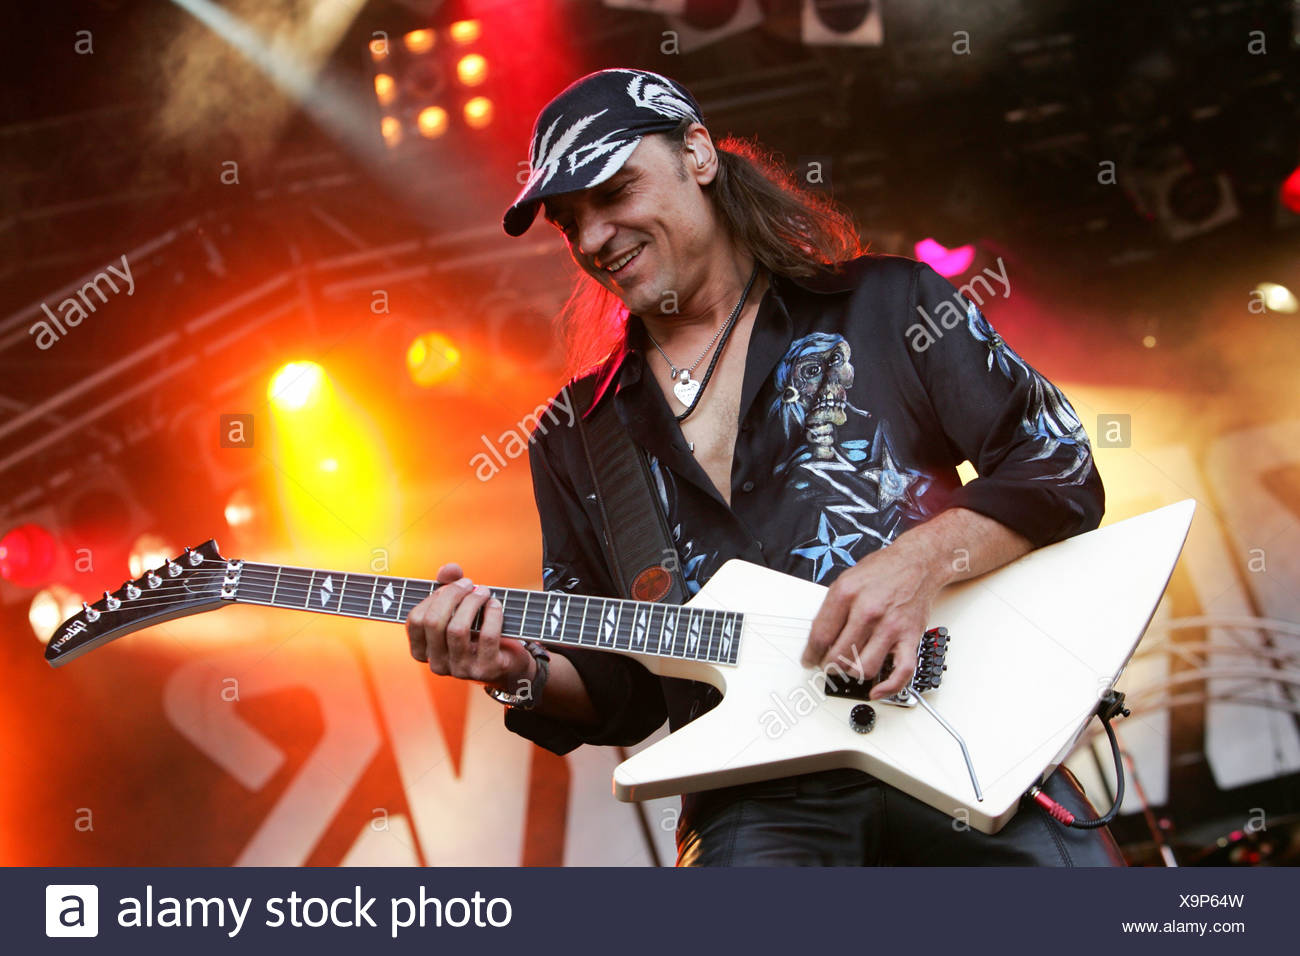 Matthias Jabs, guitarist of the German rock band Scorpions, live at the Spirit of Music Open Air in the Uster football stadium  - Stock Image